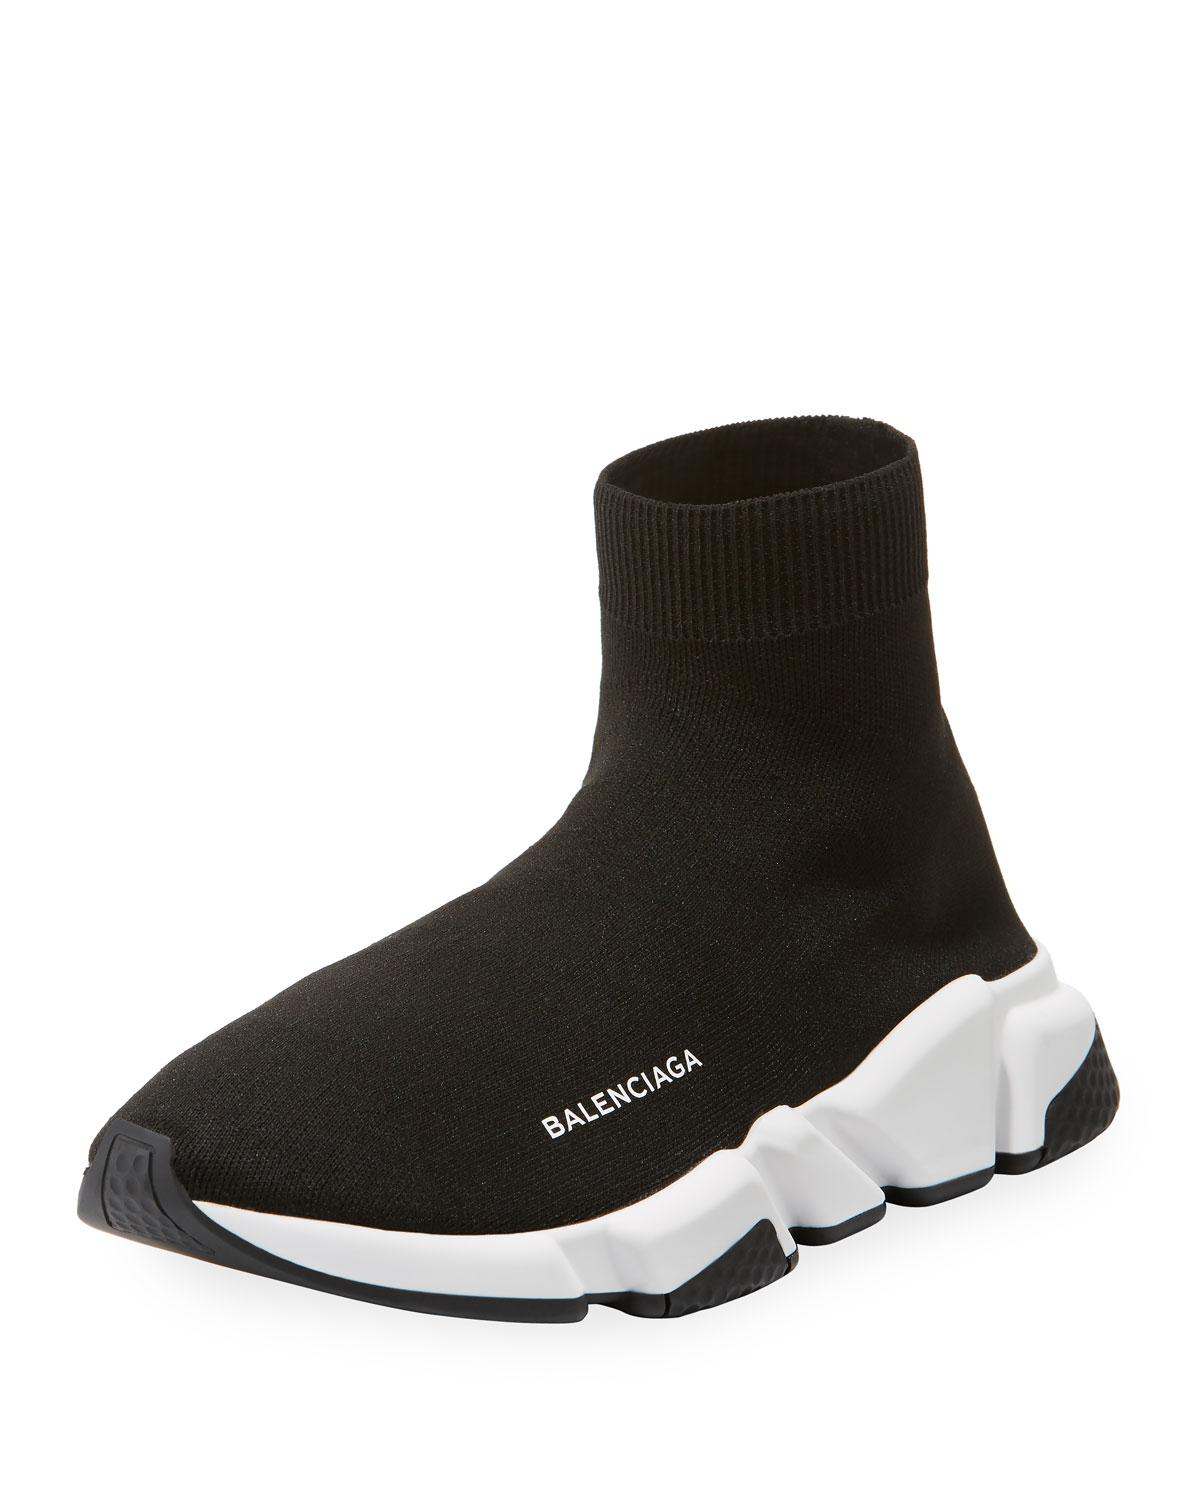 Lyst - Balenciaga Men s Speed Sneakers - Noir - Size 47 (14) in ... 631044e40